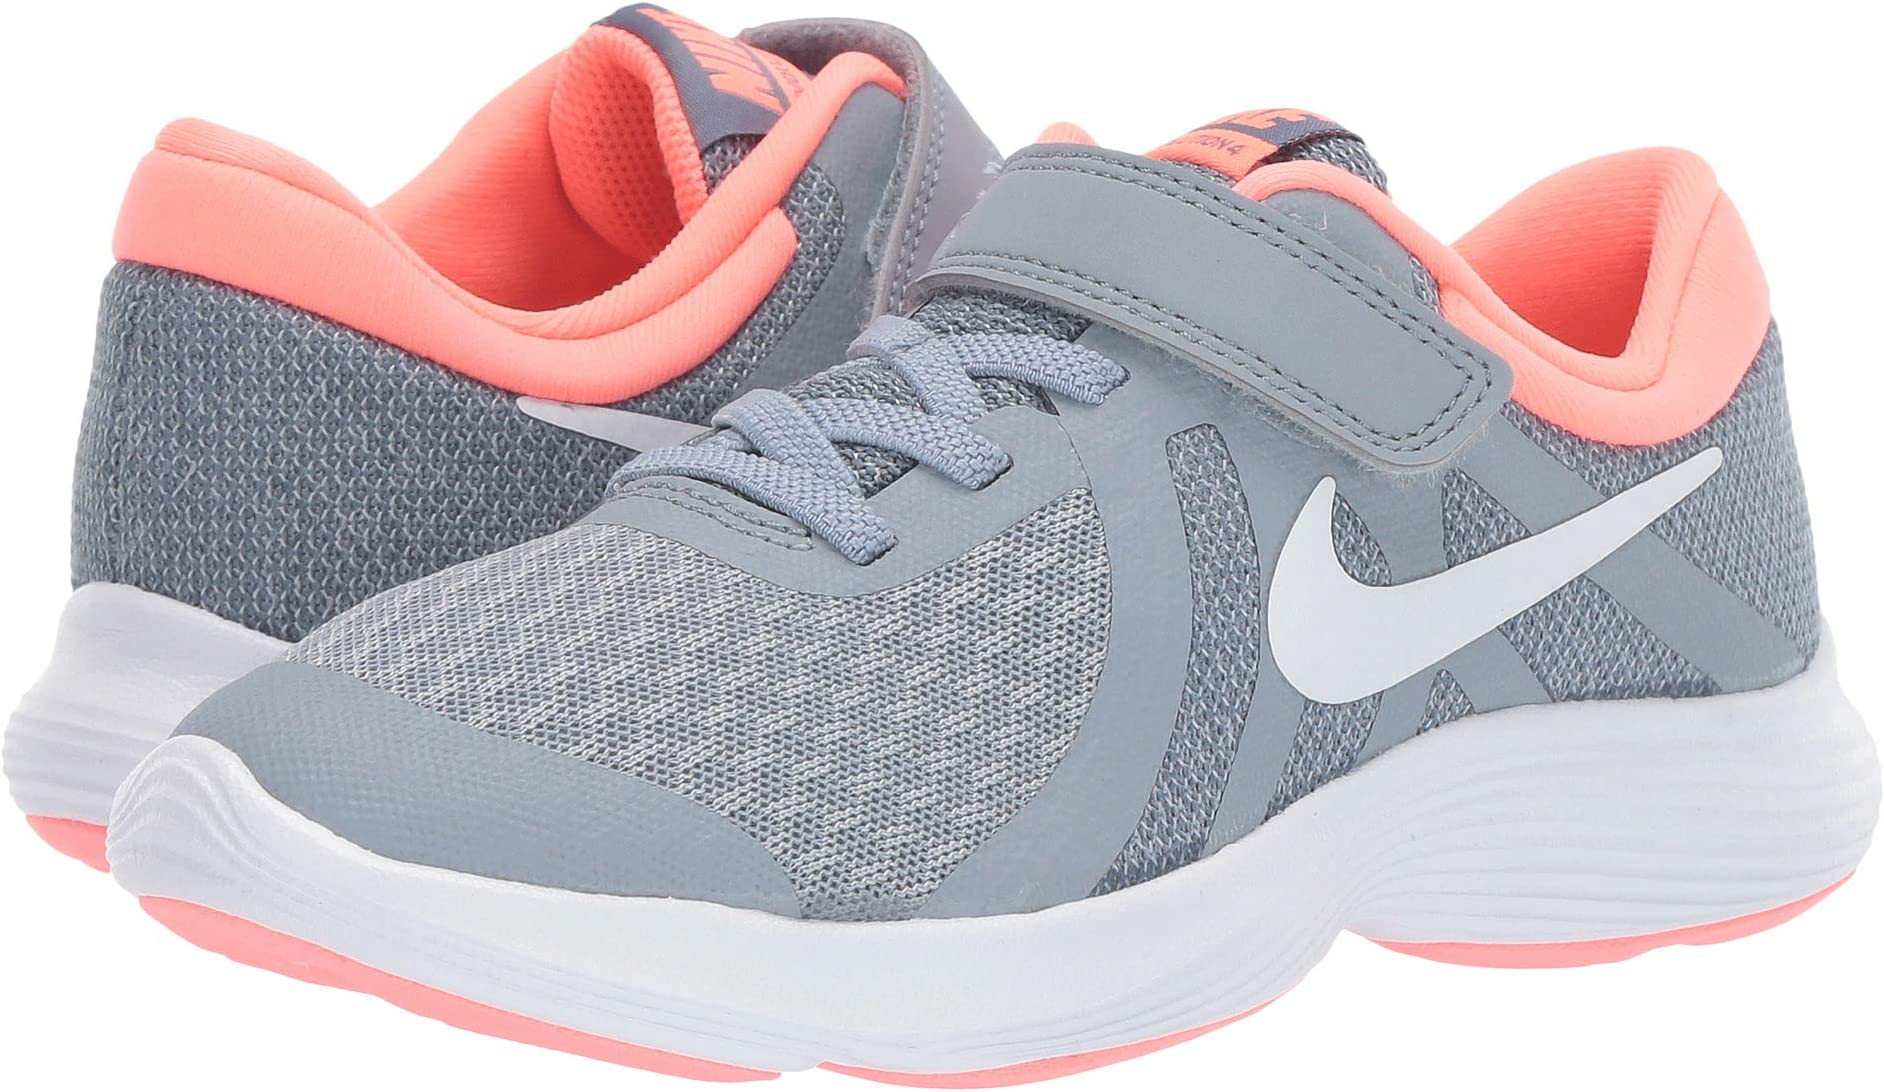 230c7ce15d Nike Shoes, Activewear, Accessories | Zappos.com